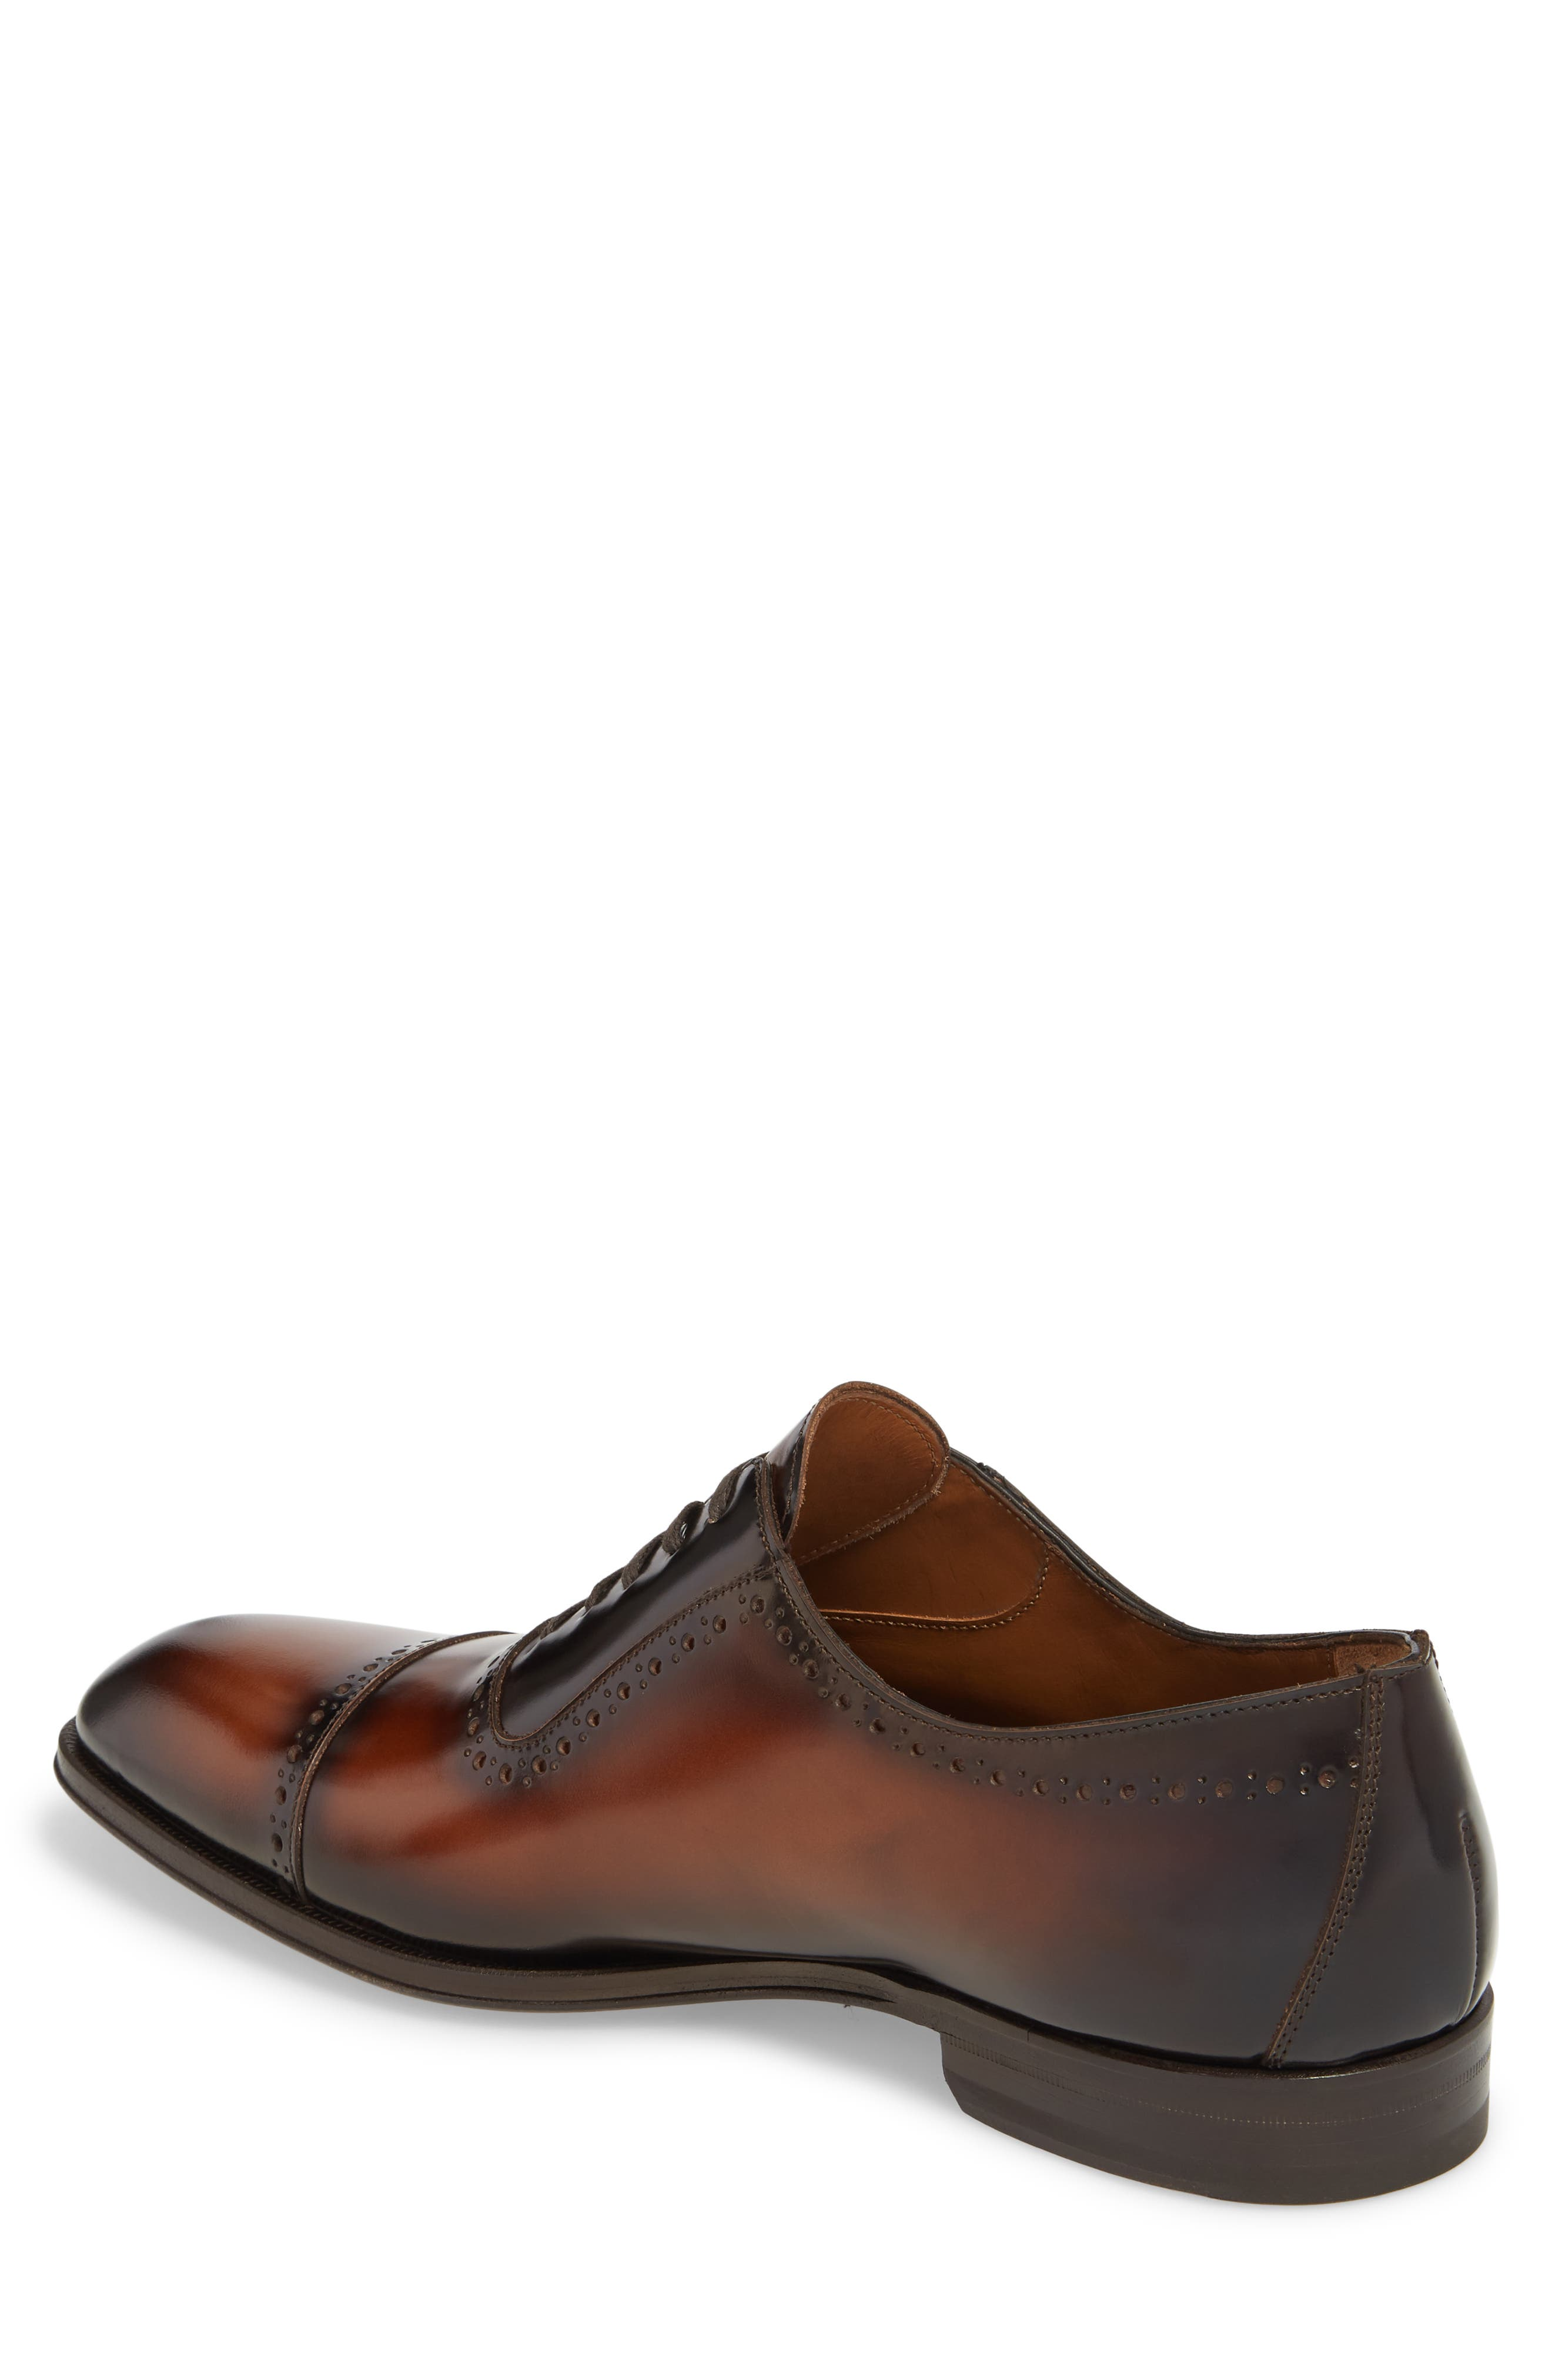 BRUNO MAGLI, Lucca Cap Toe Oxford, Alternate thumbnail 2, color, COGNAC